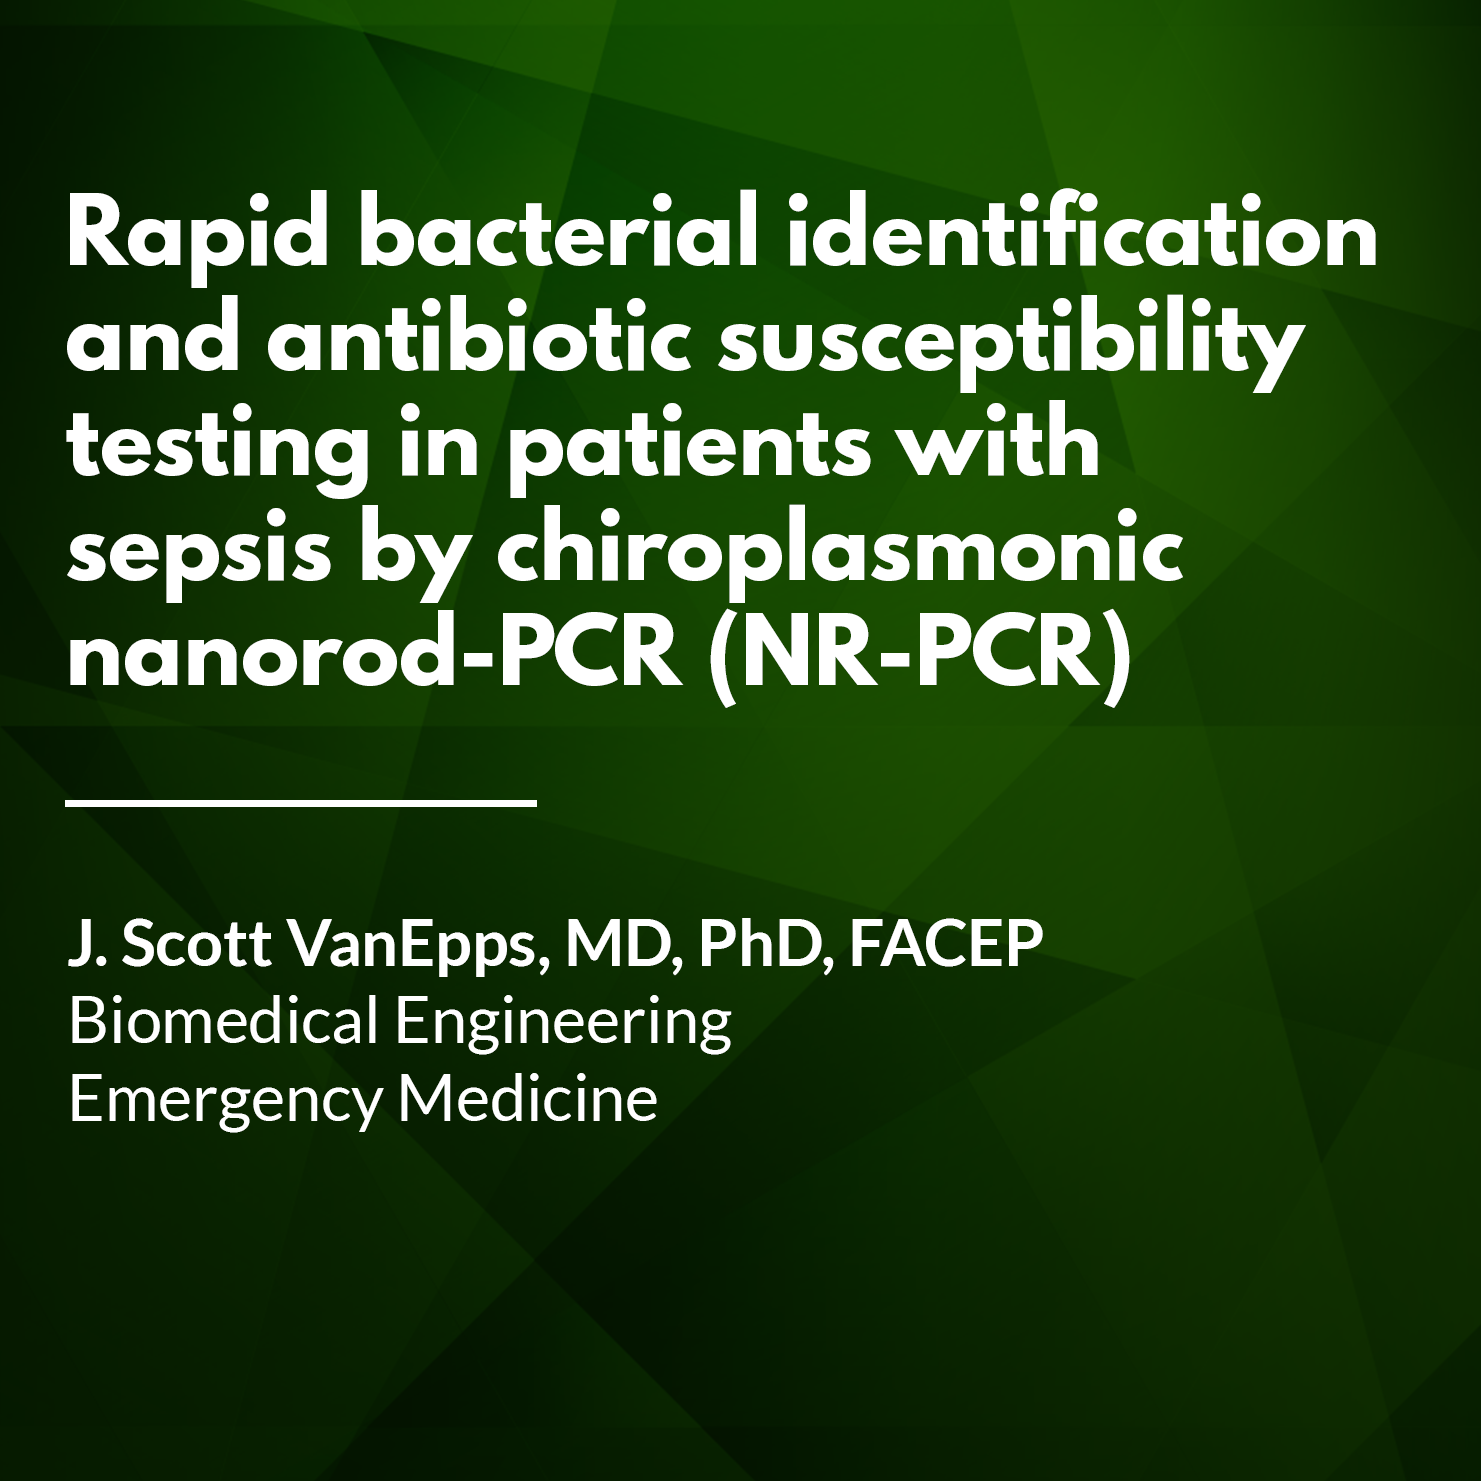 Rapid bacterial identification and antibiotic susceptibility testing in patients with sepsis by chiroplasmonic nanorod-PCR (NR-PCR).png